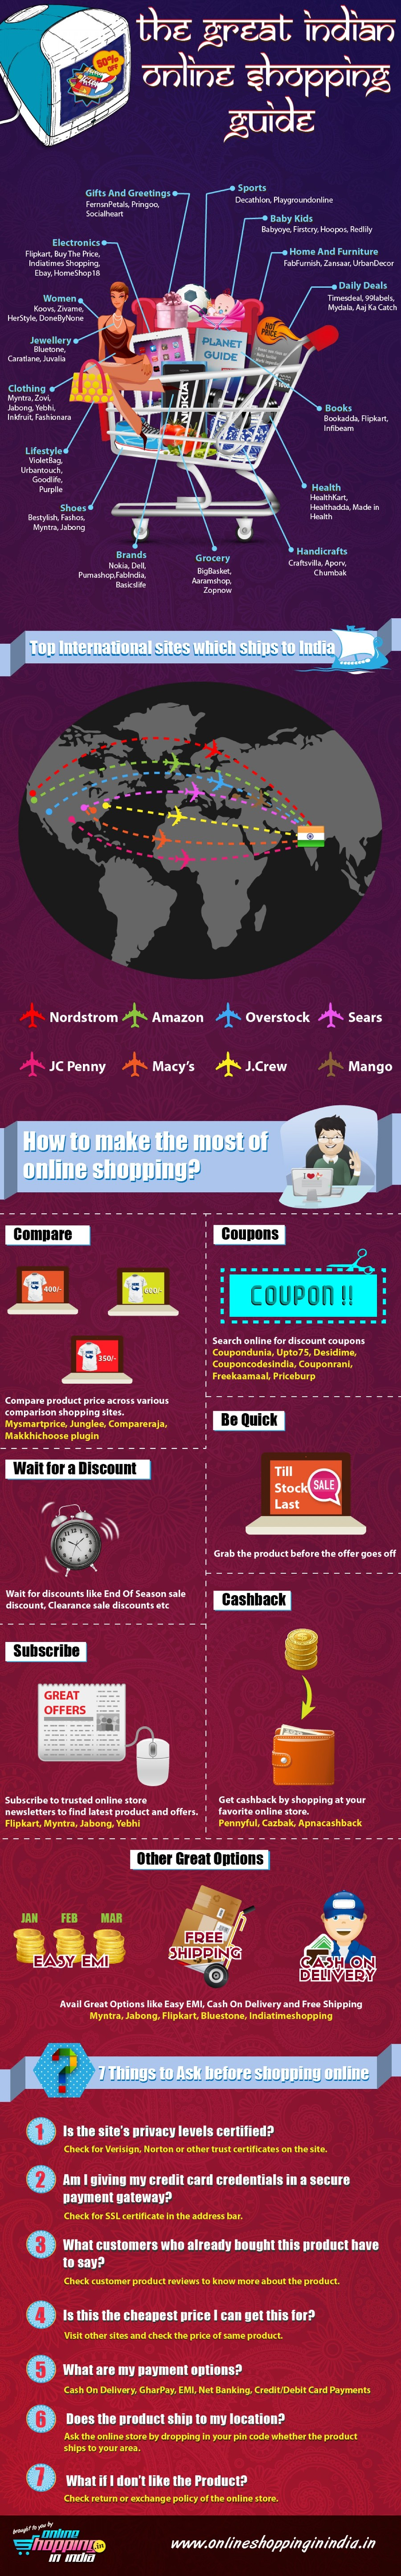 The great Indian online shopping guide